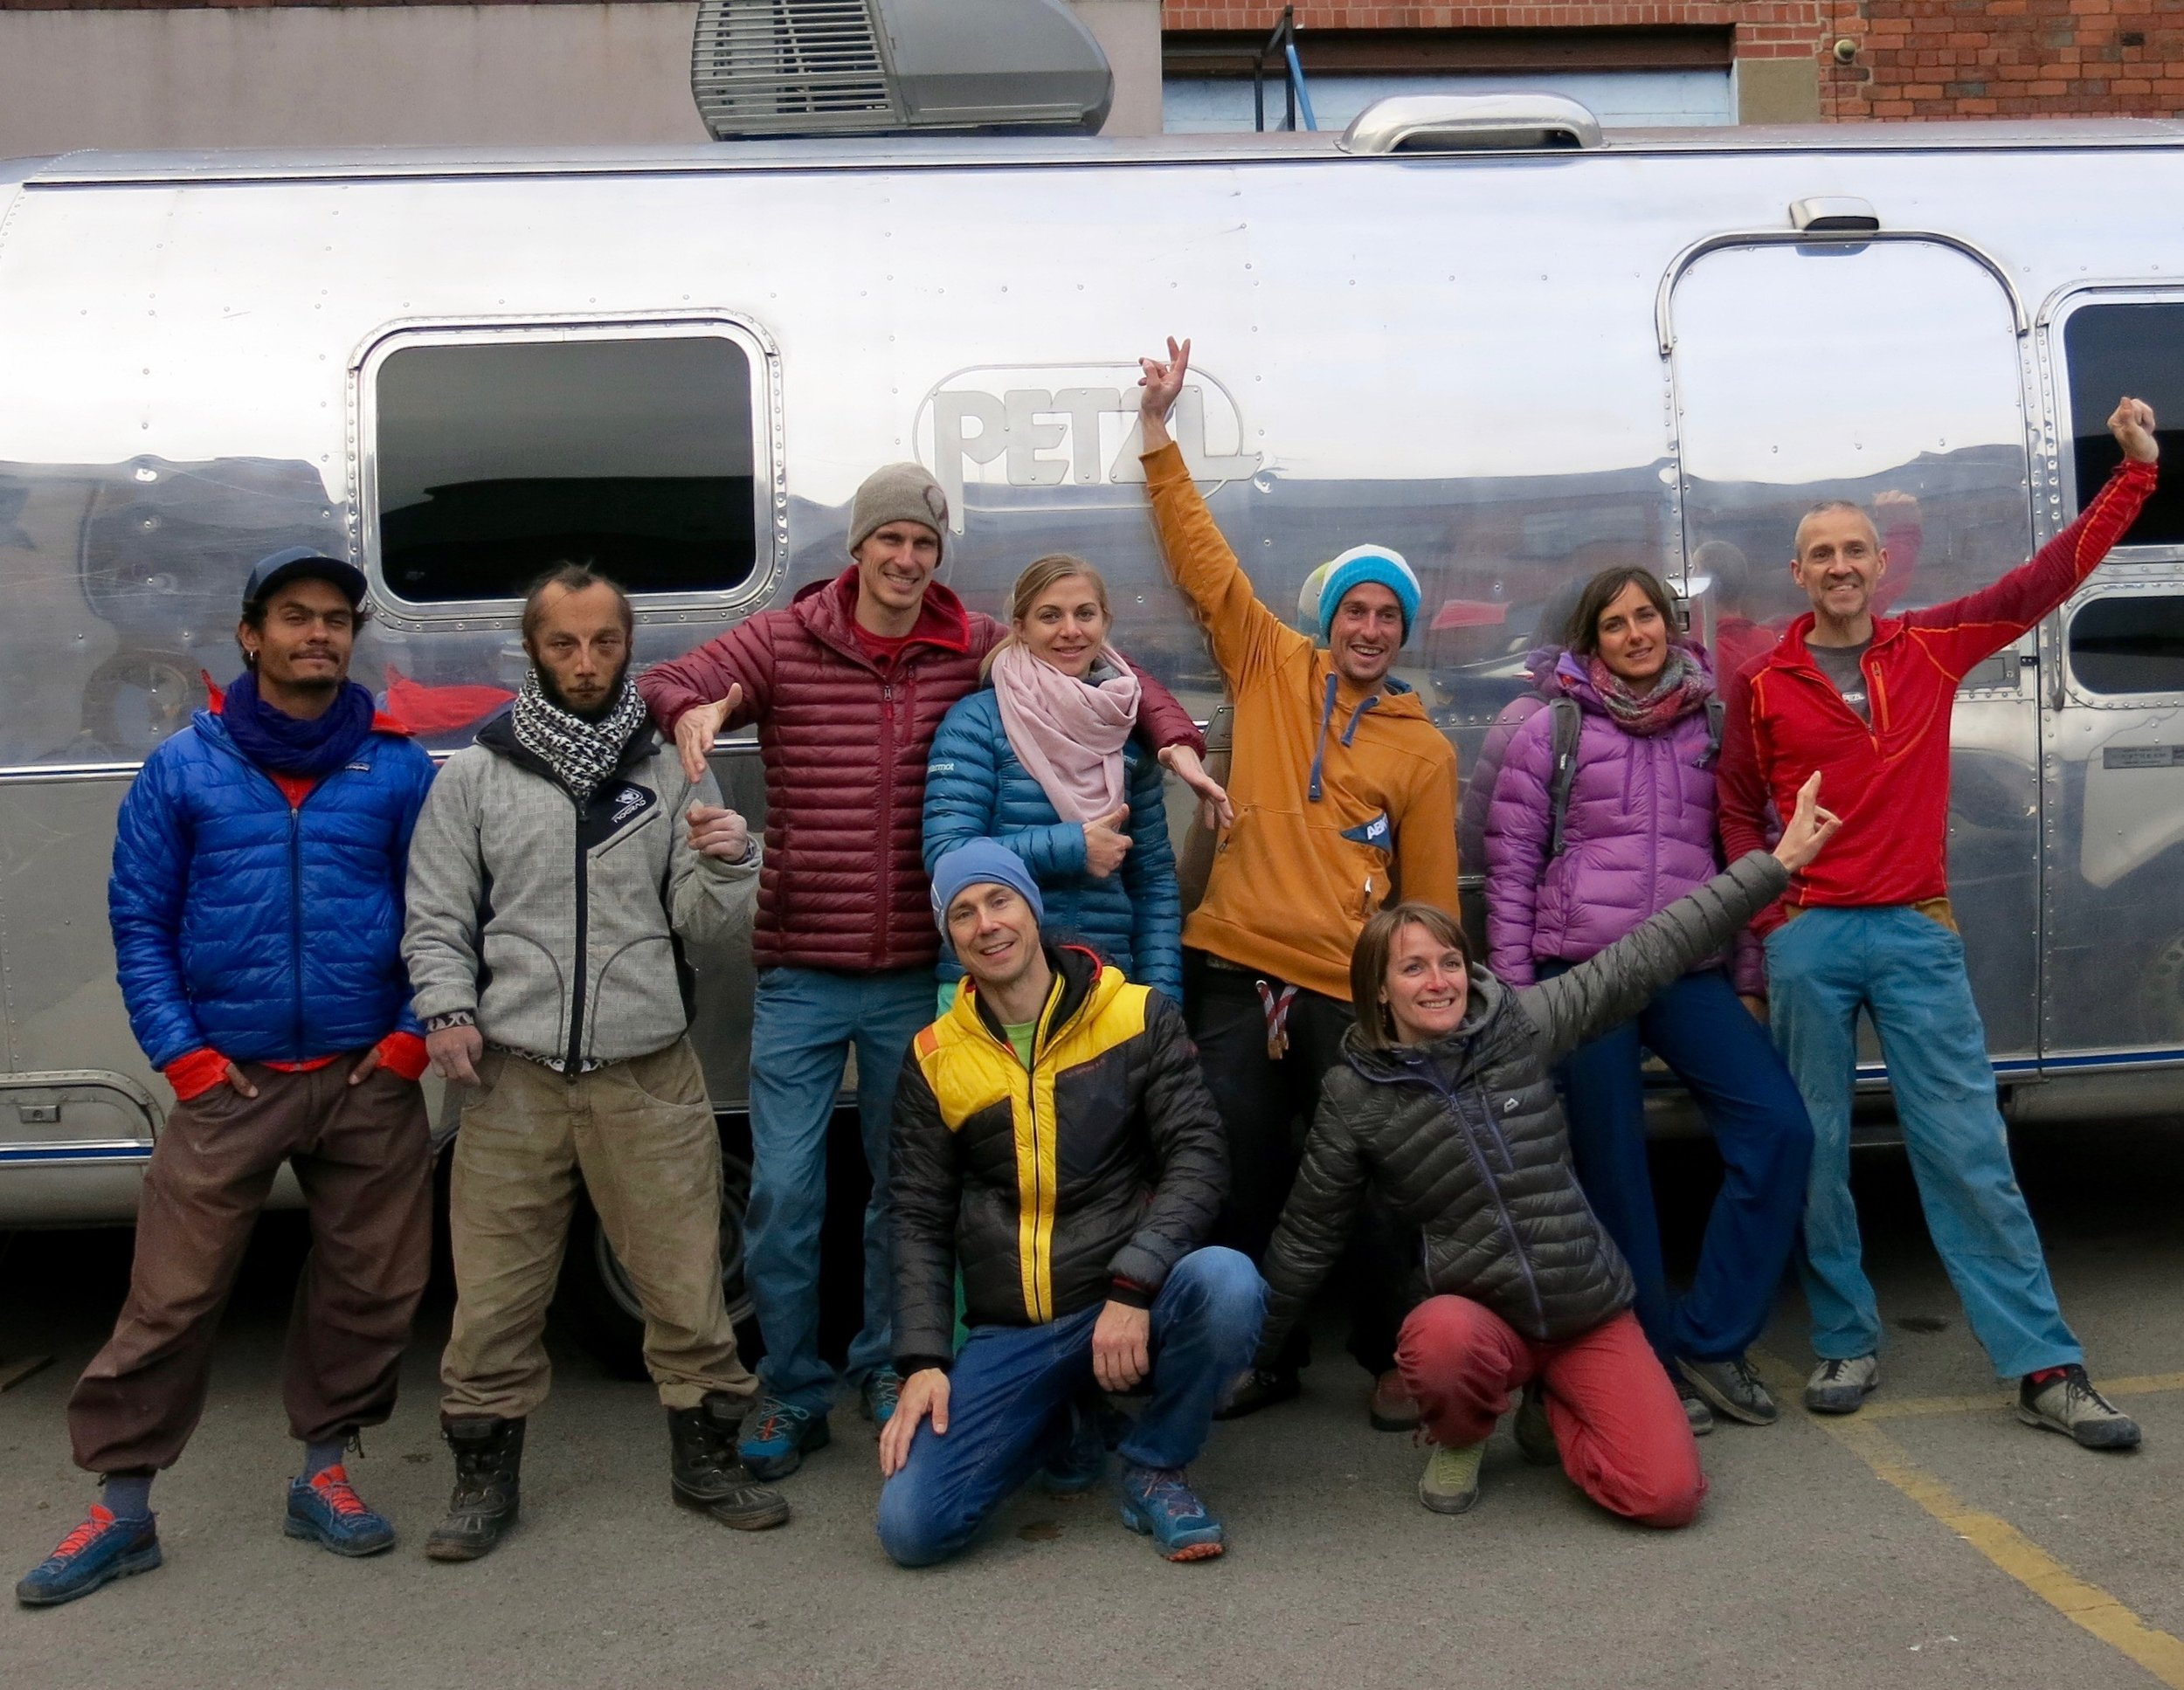 The team with the caravan at the Foundry in Sheffield. Clockwise from top left:Said Belhaj, Philippe RIbiere, Jorg Verhoeven, Katha Saurwein, Gerome Pouvreau, Alizee Dufraisse, Steve McClure, Florence Pinet, NG.